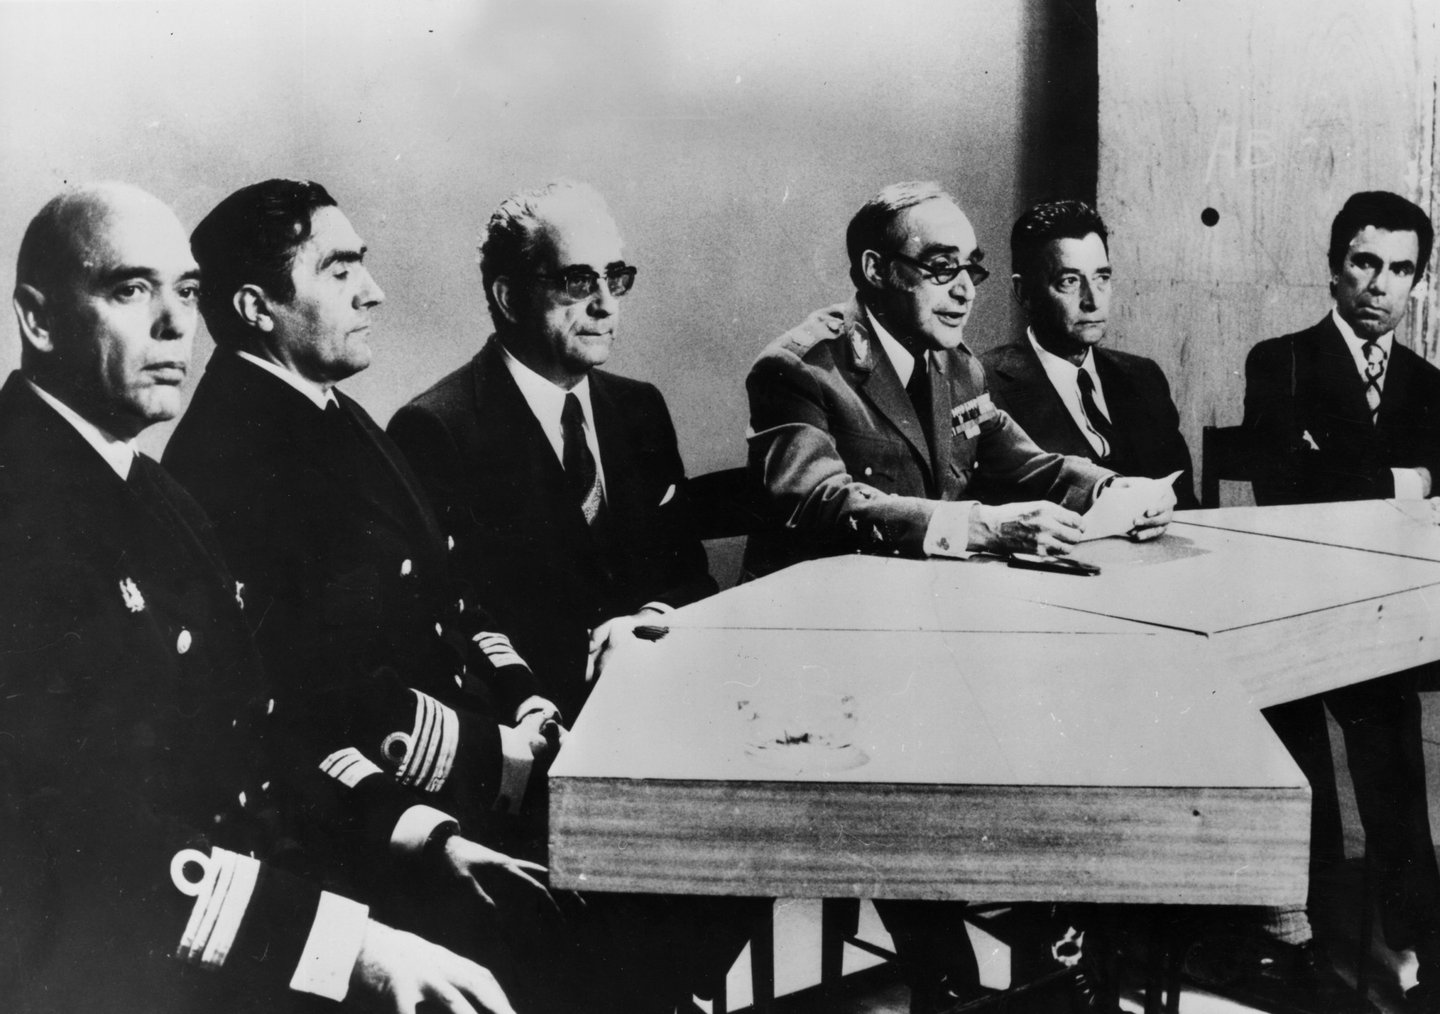 30th April 1974: General Antonio Spinola, centre, chairs a press conference at Lisbon with officers of the junta, after overthrowing the Caetano government. At the table are, from left to right, Captain Antonio Rosa Coutinho, Captain Jose Baptista Puheiro de Azevedo, General Costa Gomes, General Spinola, Brigadier Jaime Silverio Marques and Colonel Carlos Galvao de Melo. (Photo by Keystone/Getty Images)